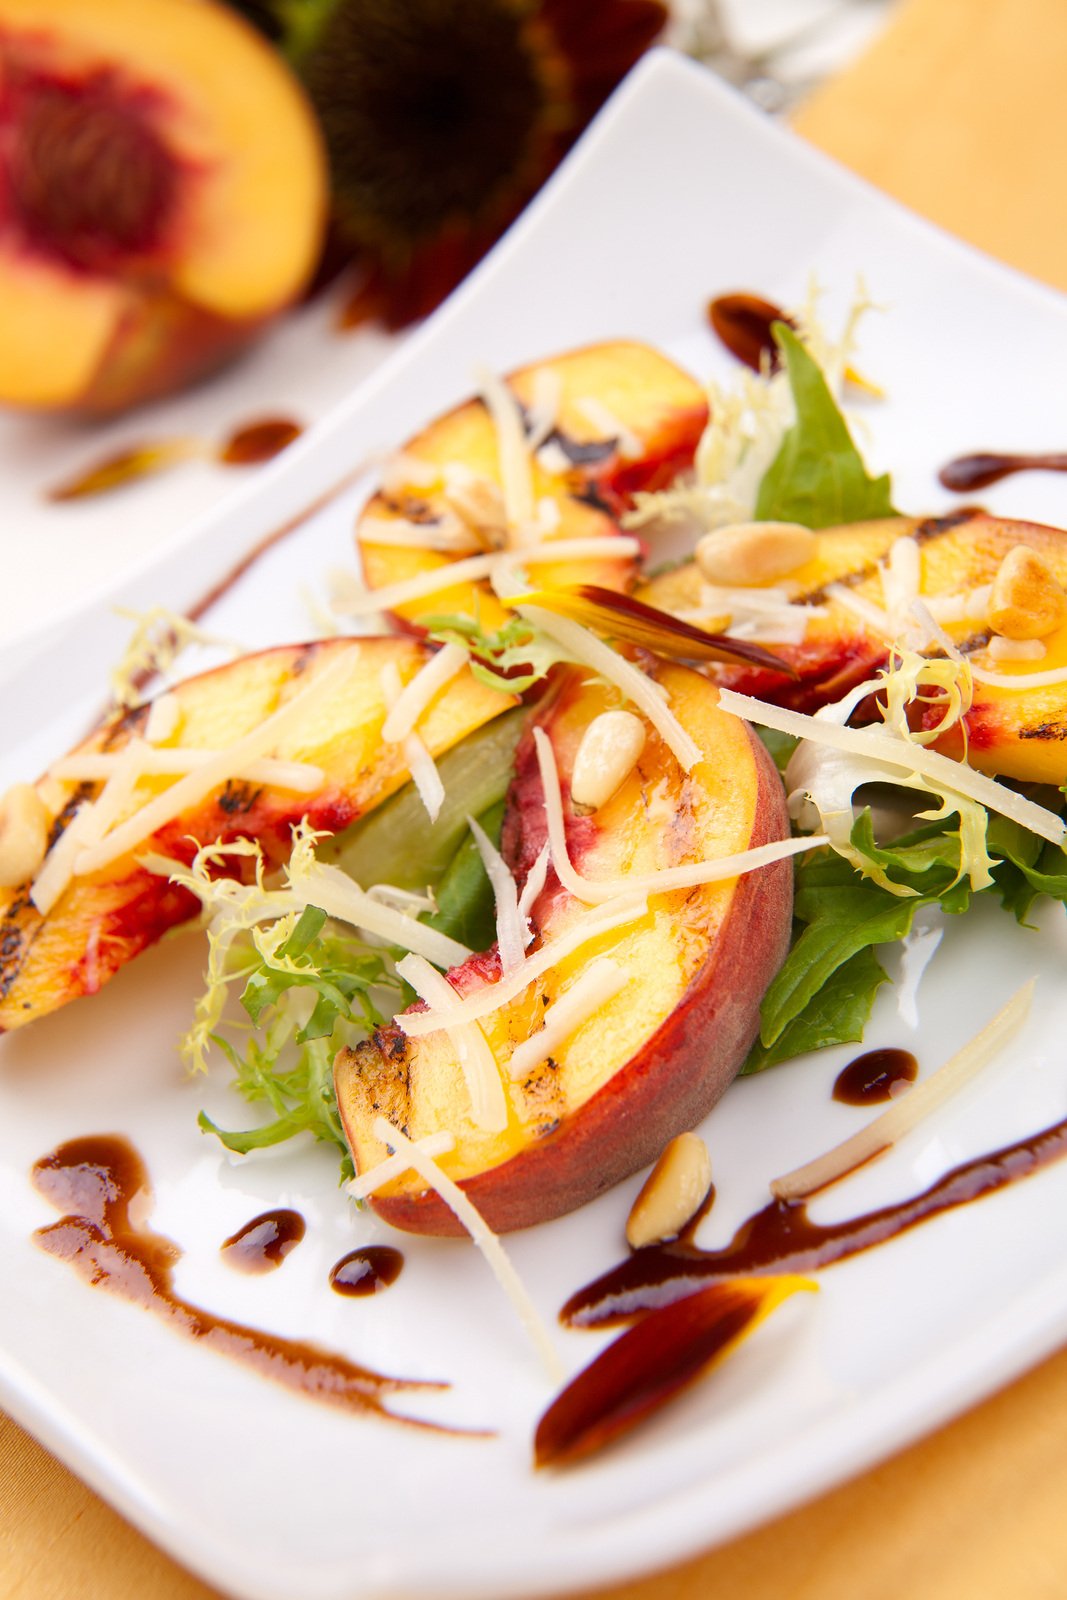 ... peaches salad with Parmesan cheese and roasted pine nuts. Balsamic